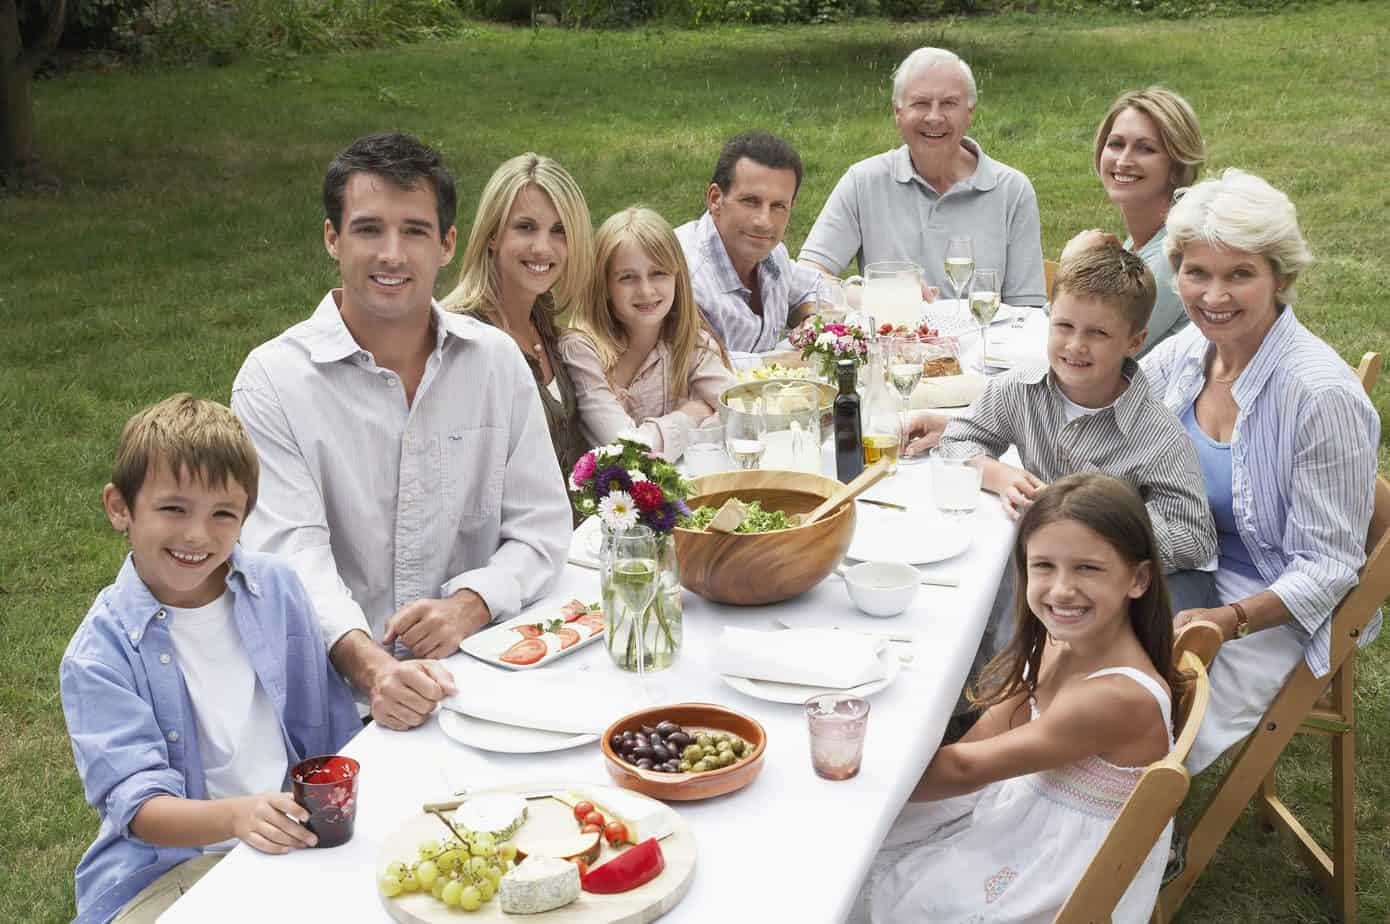 Group of people around a dinner table who might at some point consider hypnotherapy or counselling